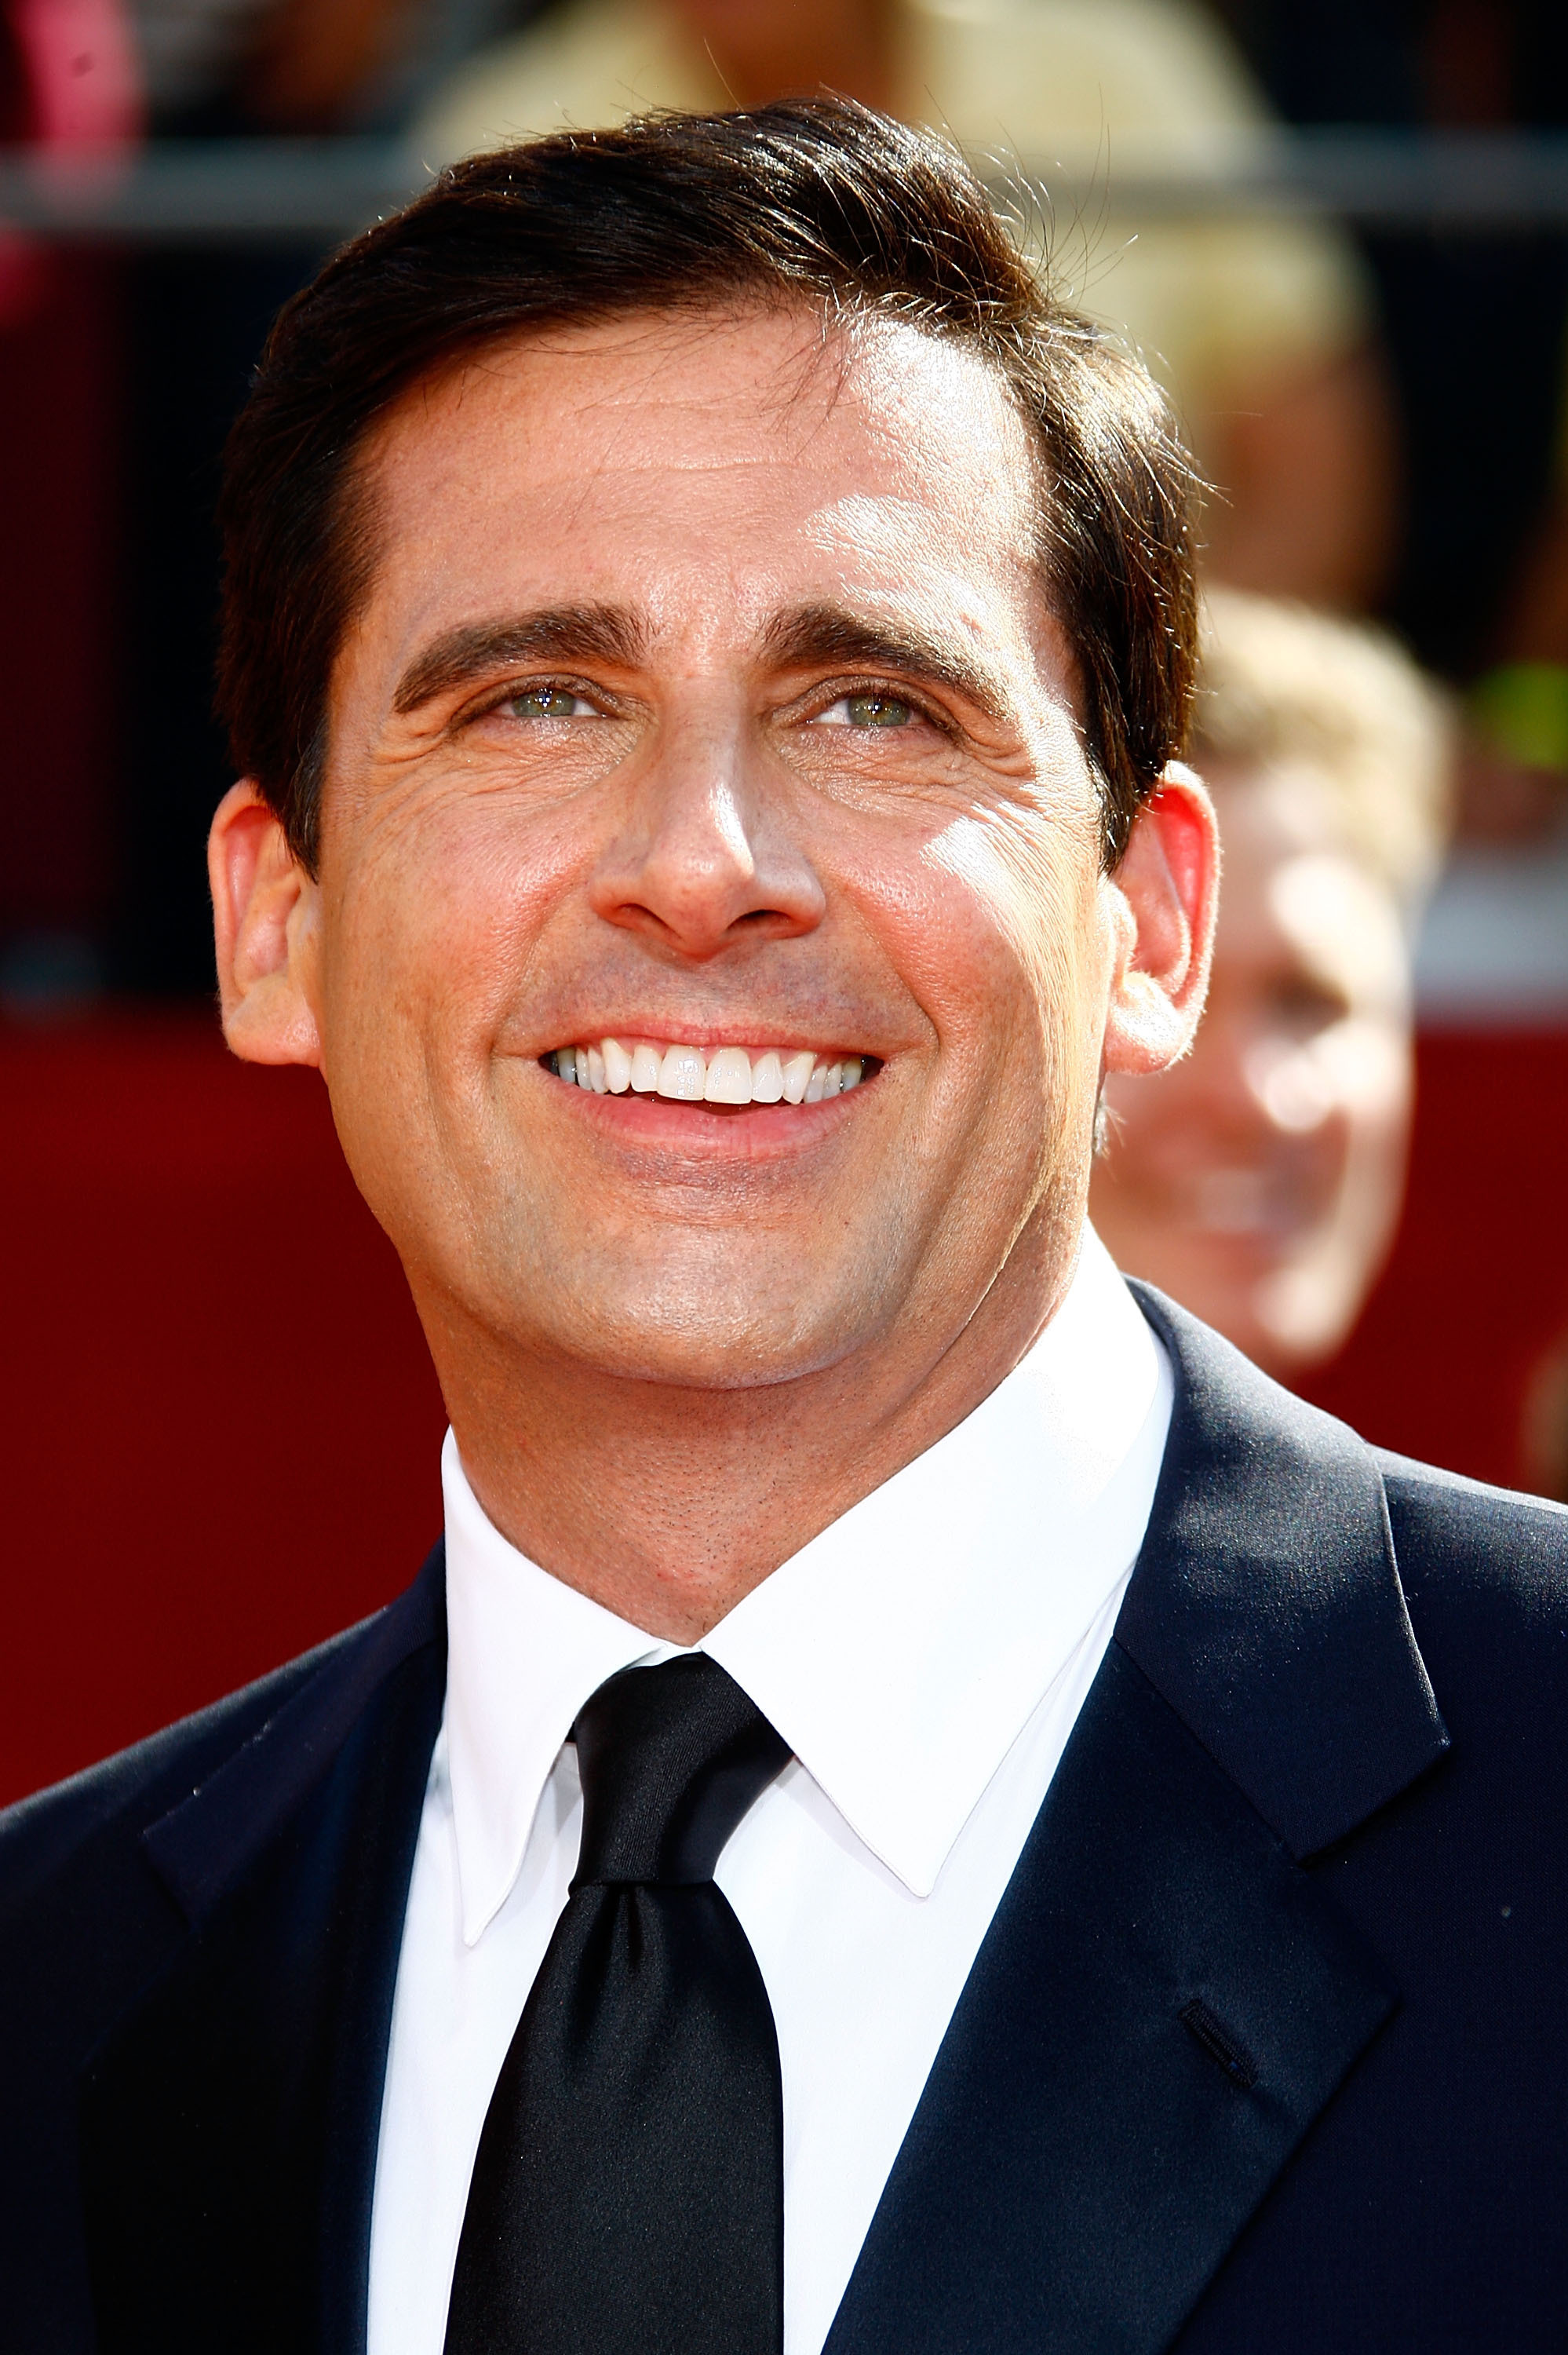 The 'Real Life' Of Actor Steve Carell - 82936904_enl-0c6354ec42dc5a9be2054383004381643bd5ab4c